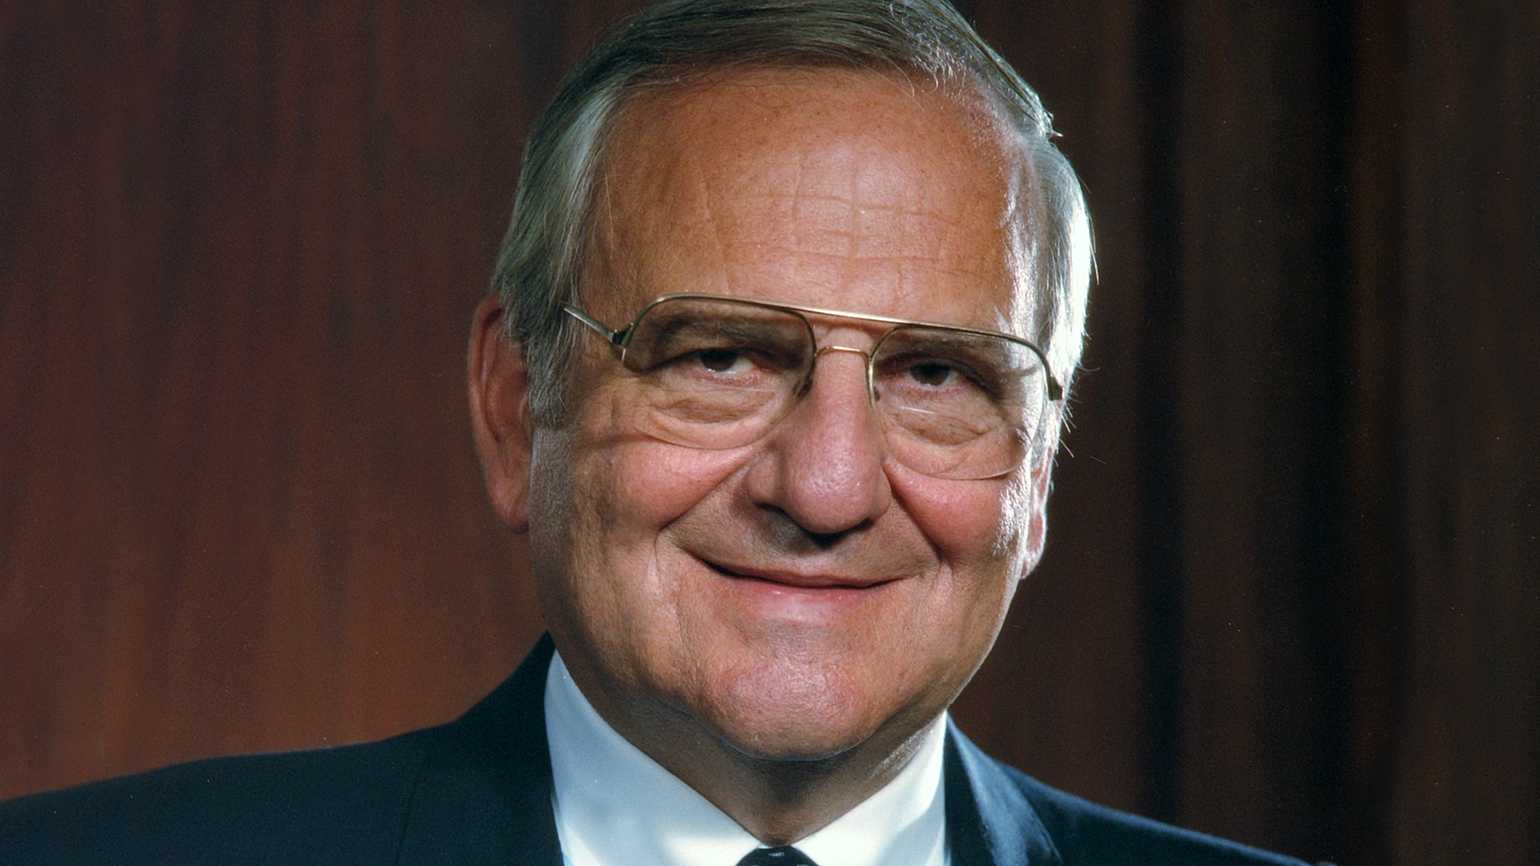 Lee Iacocca in 1984